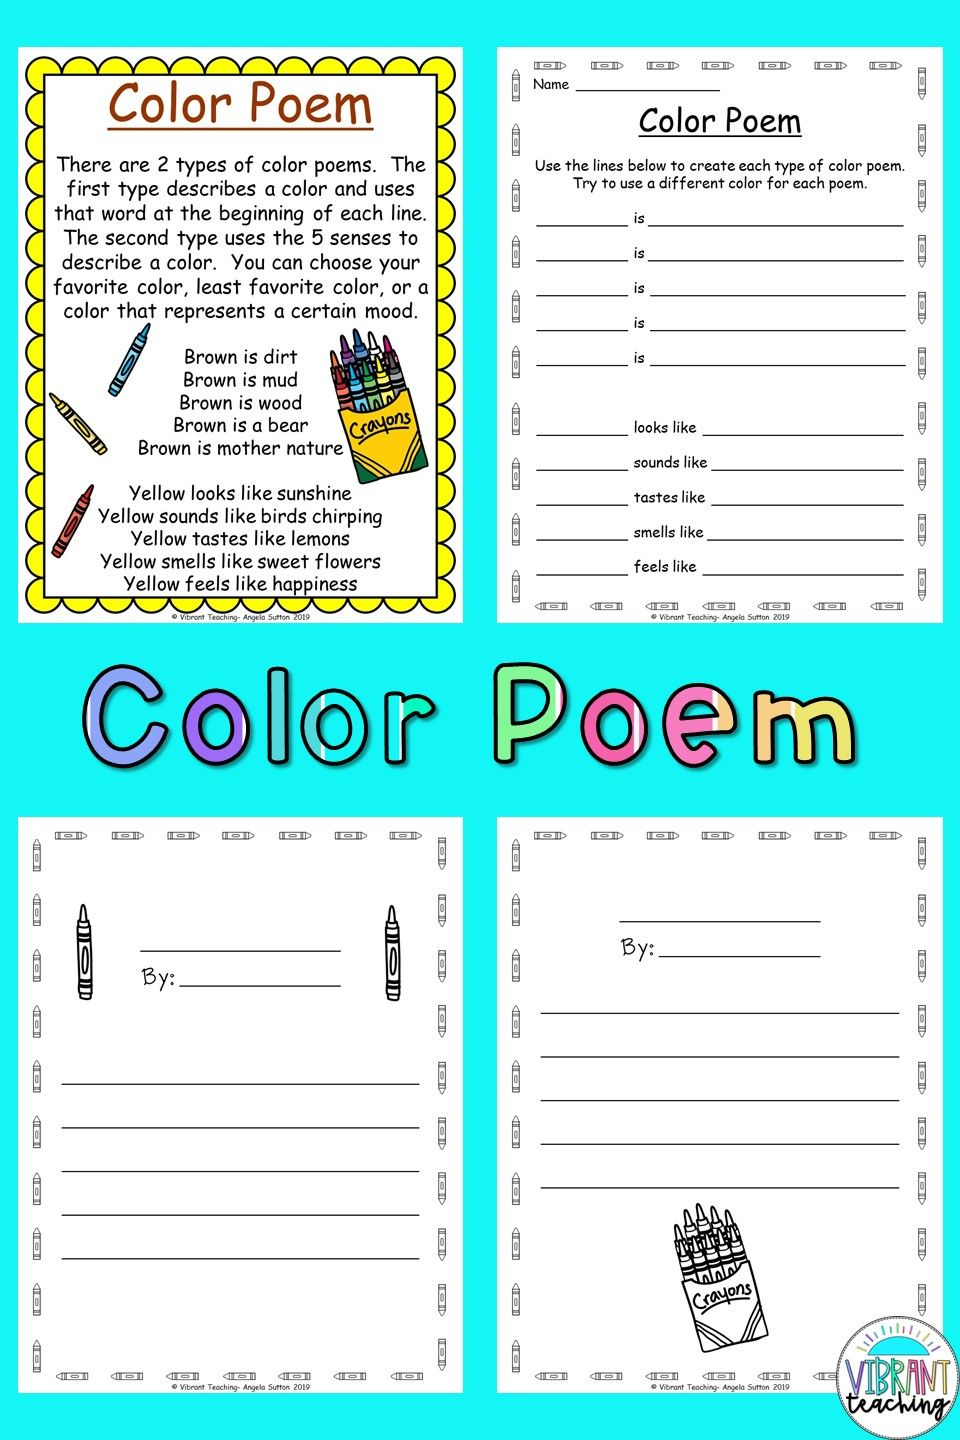 Color Poems For Kids In 2020 Color Poem Poem Activities Poetry For Kids